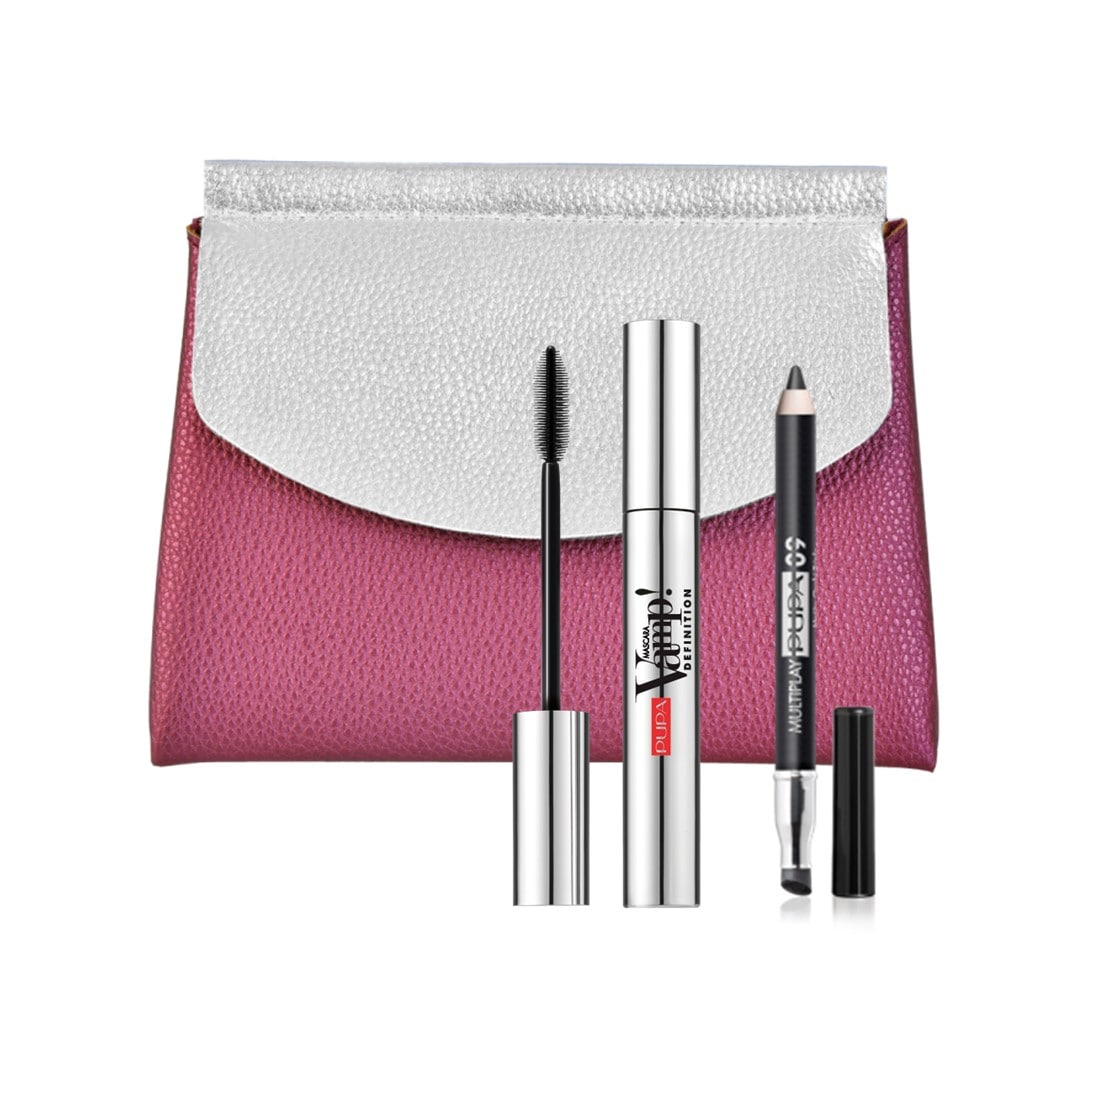 Set Vamp Mascara Definition & Multiplay Special Size Triple-Purpose Eye Pencil